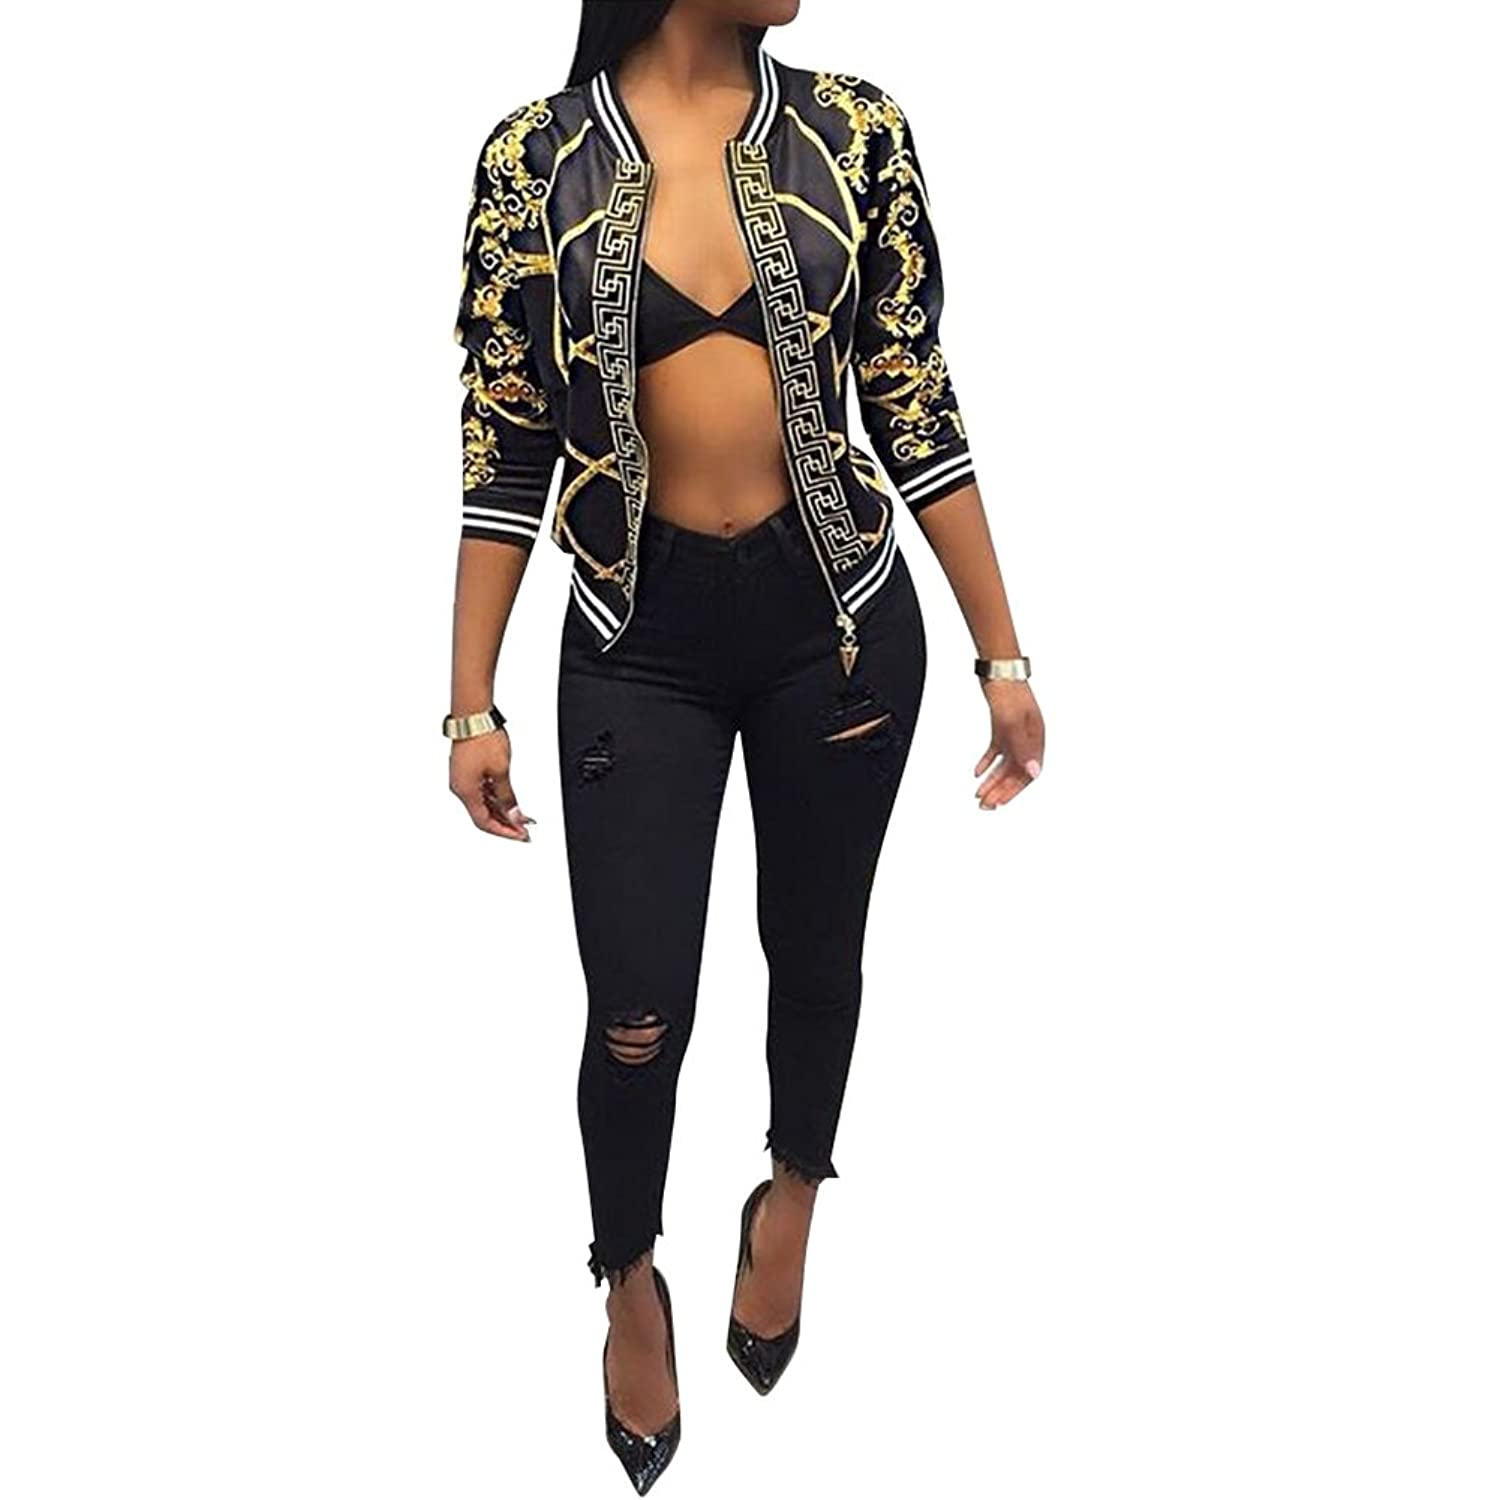 2c76379cfc0 Top10  Metup Women s Vintage Gold Chain Print Bomber Jacket with Long Sleeve  Banded Collar